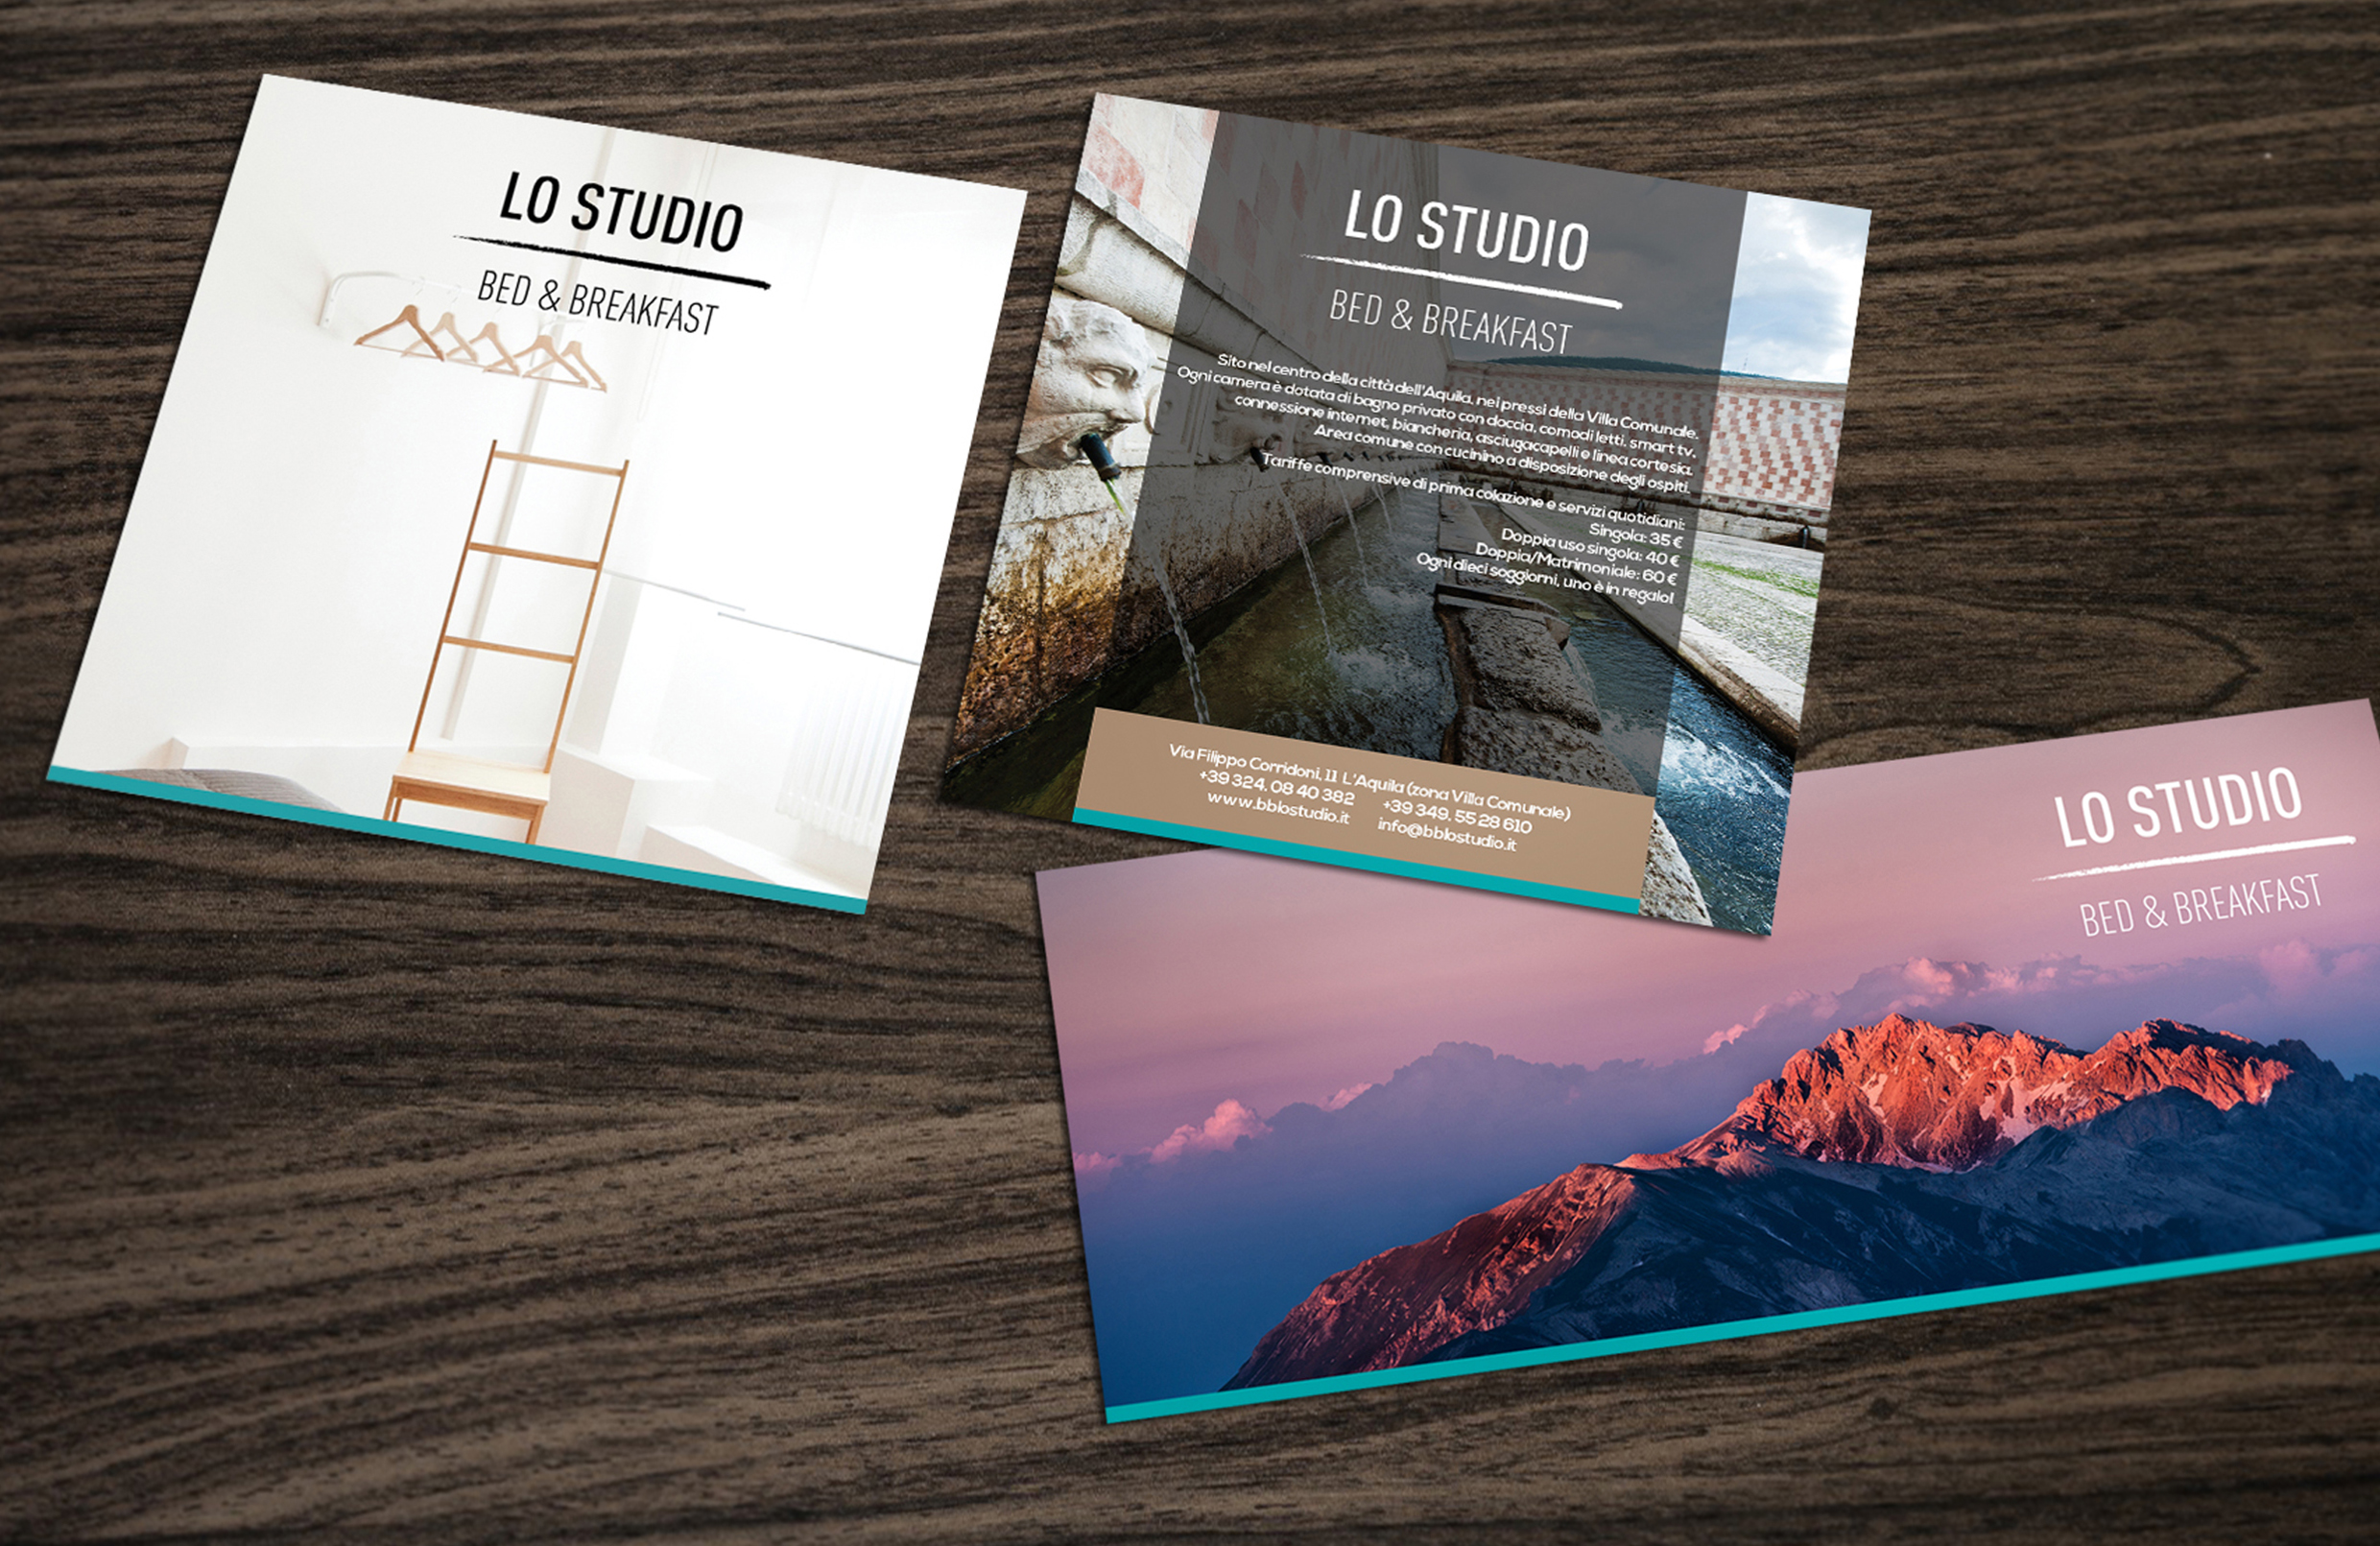 GEMINIWEB - IMAGE - STATIONERY - B&B LO STUDIO 3